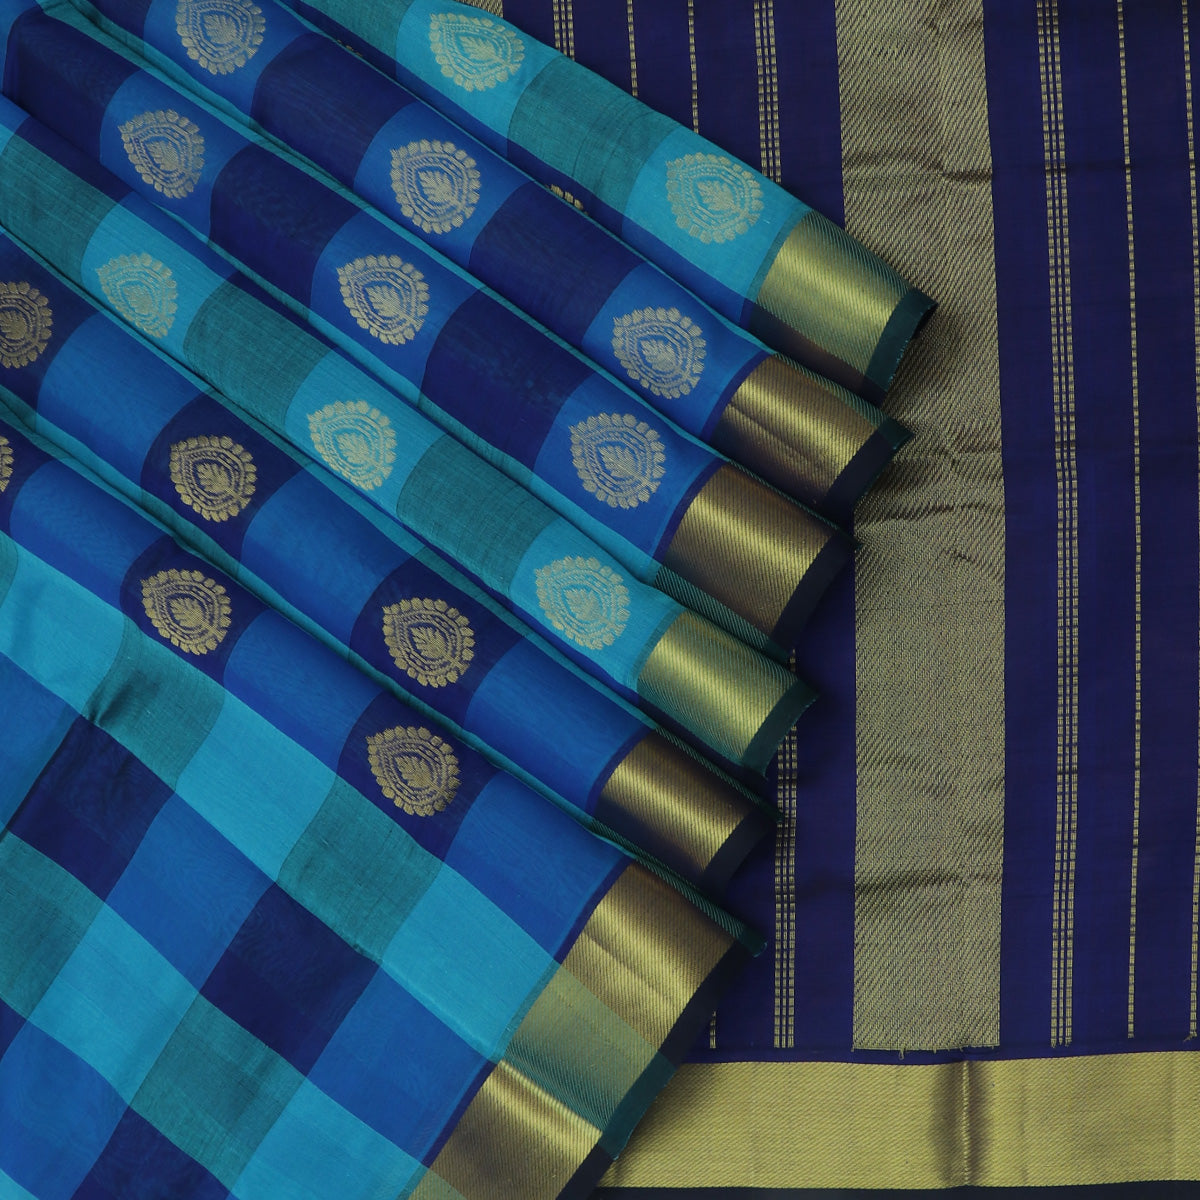 Silk Cotton Saree-Blue and Sky Blue Paalum Pazham Checks with buttas and zari Border